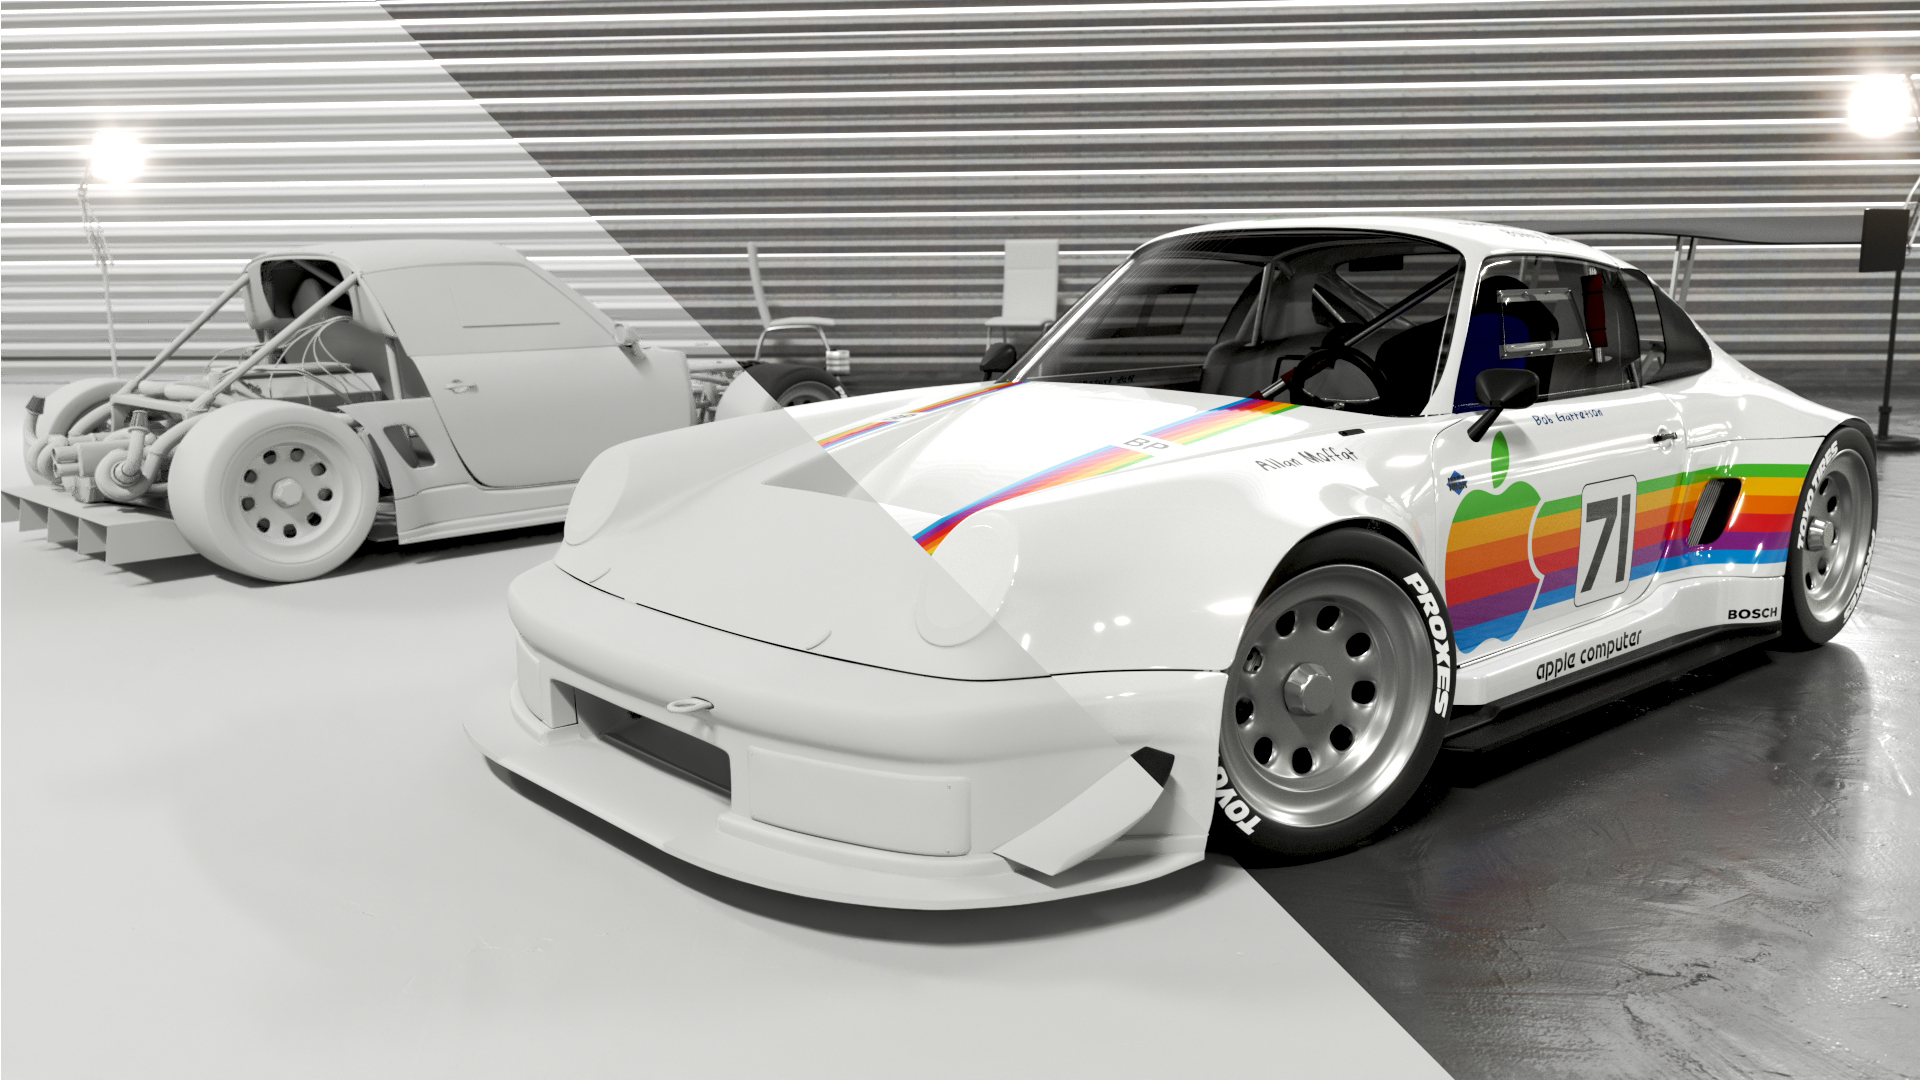 Car Render Challenge 2019 Apple Computer porsche facility